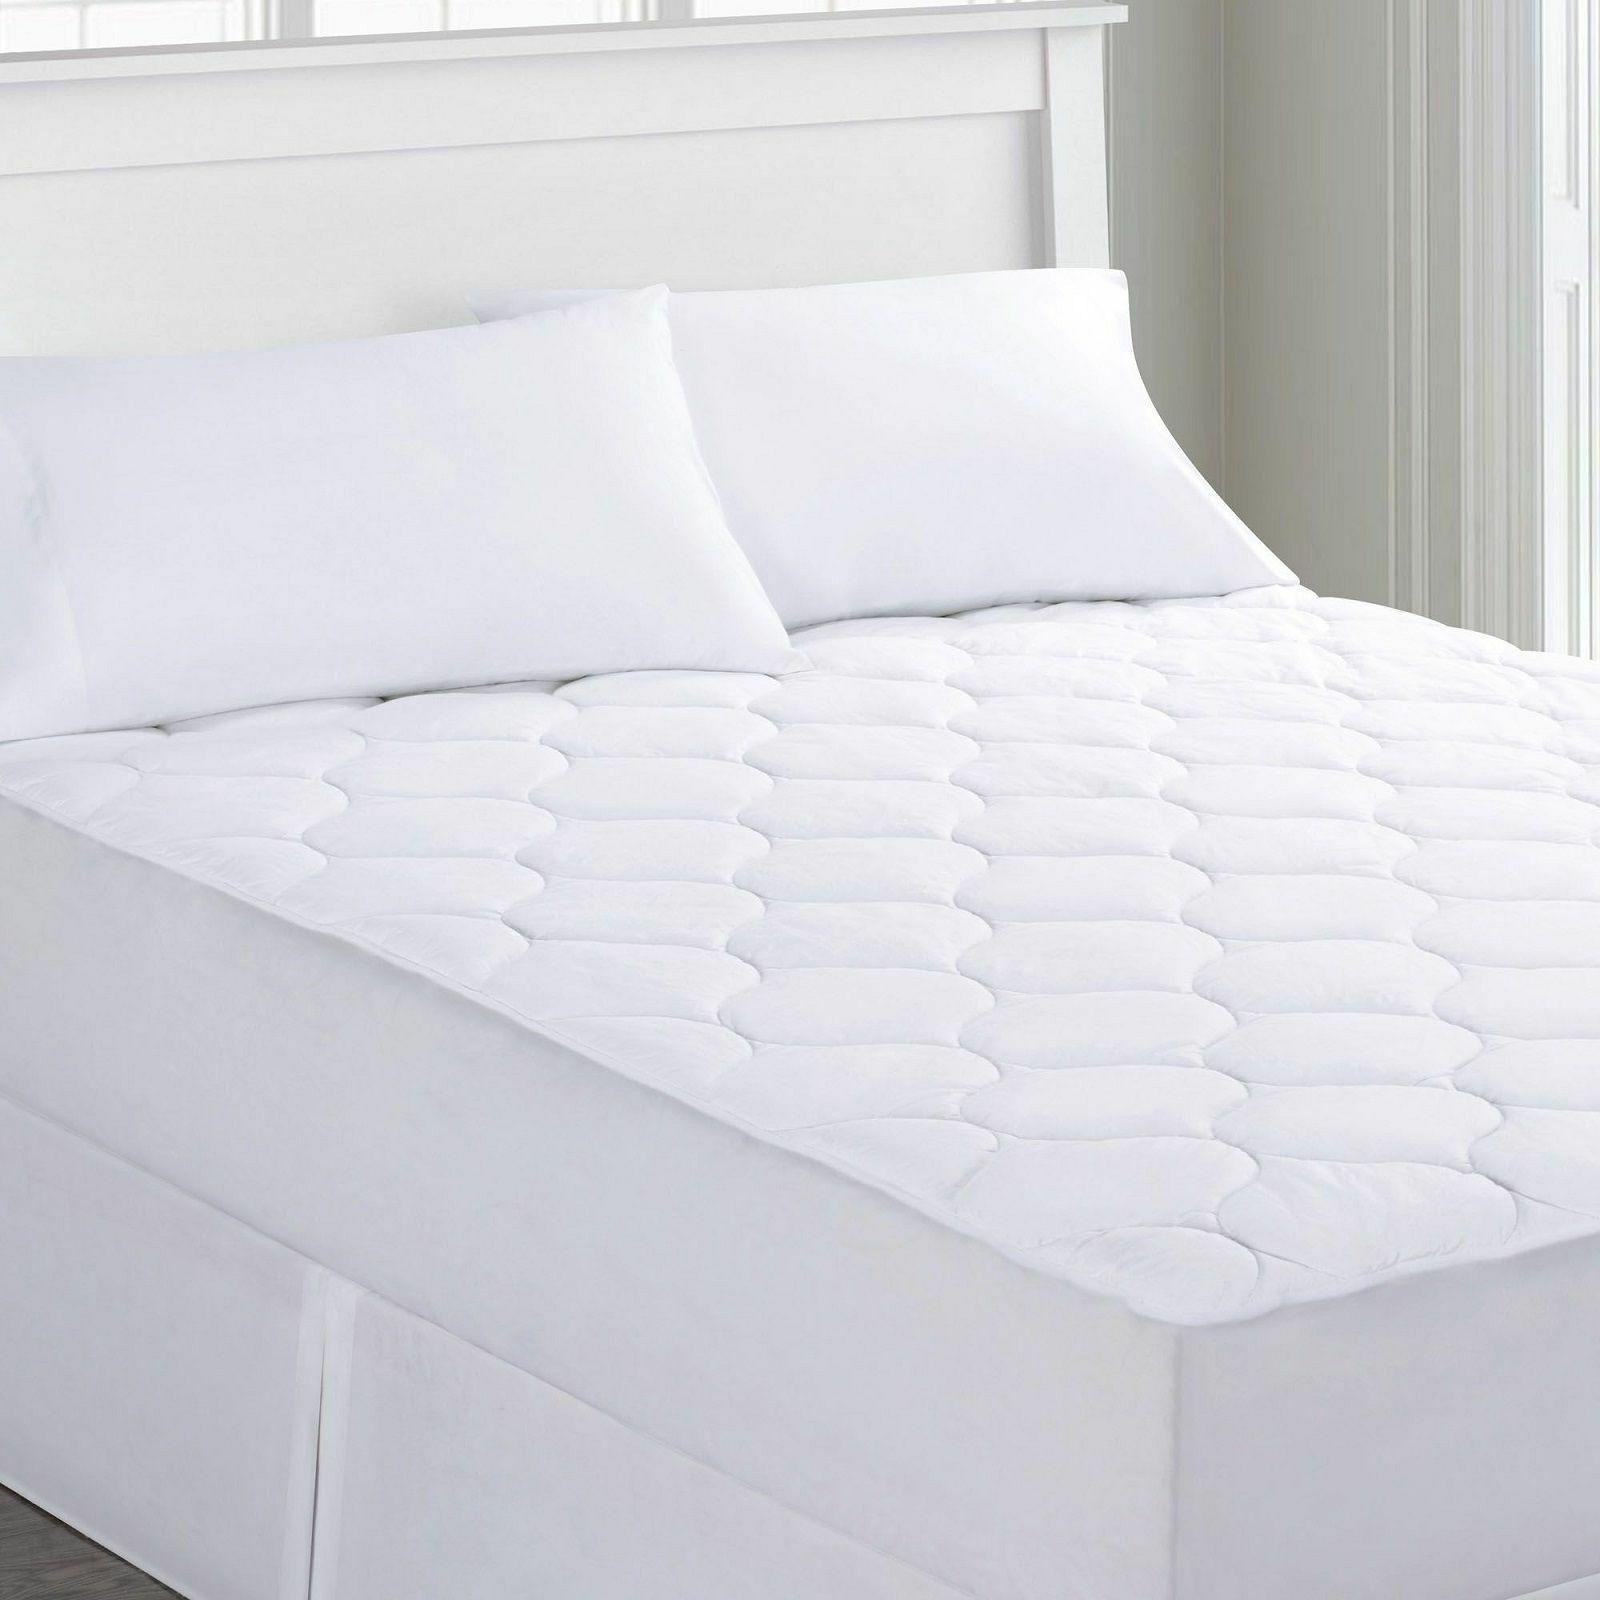 quilted waterproof mattress pad fits 16 inch